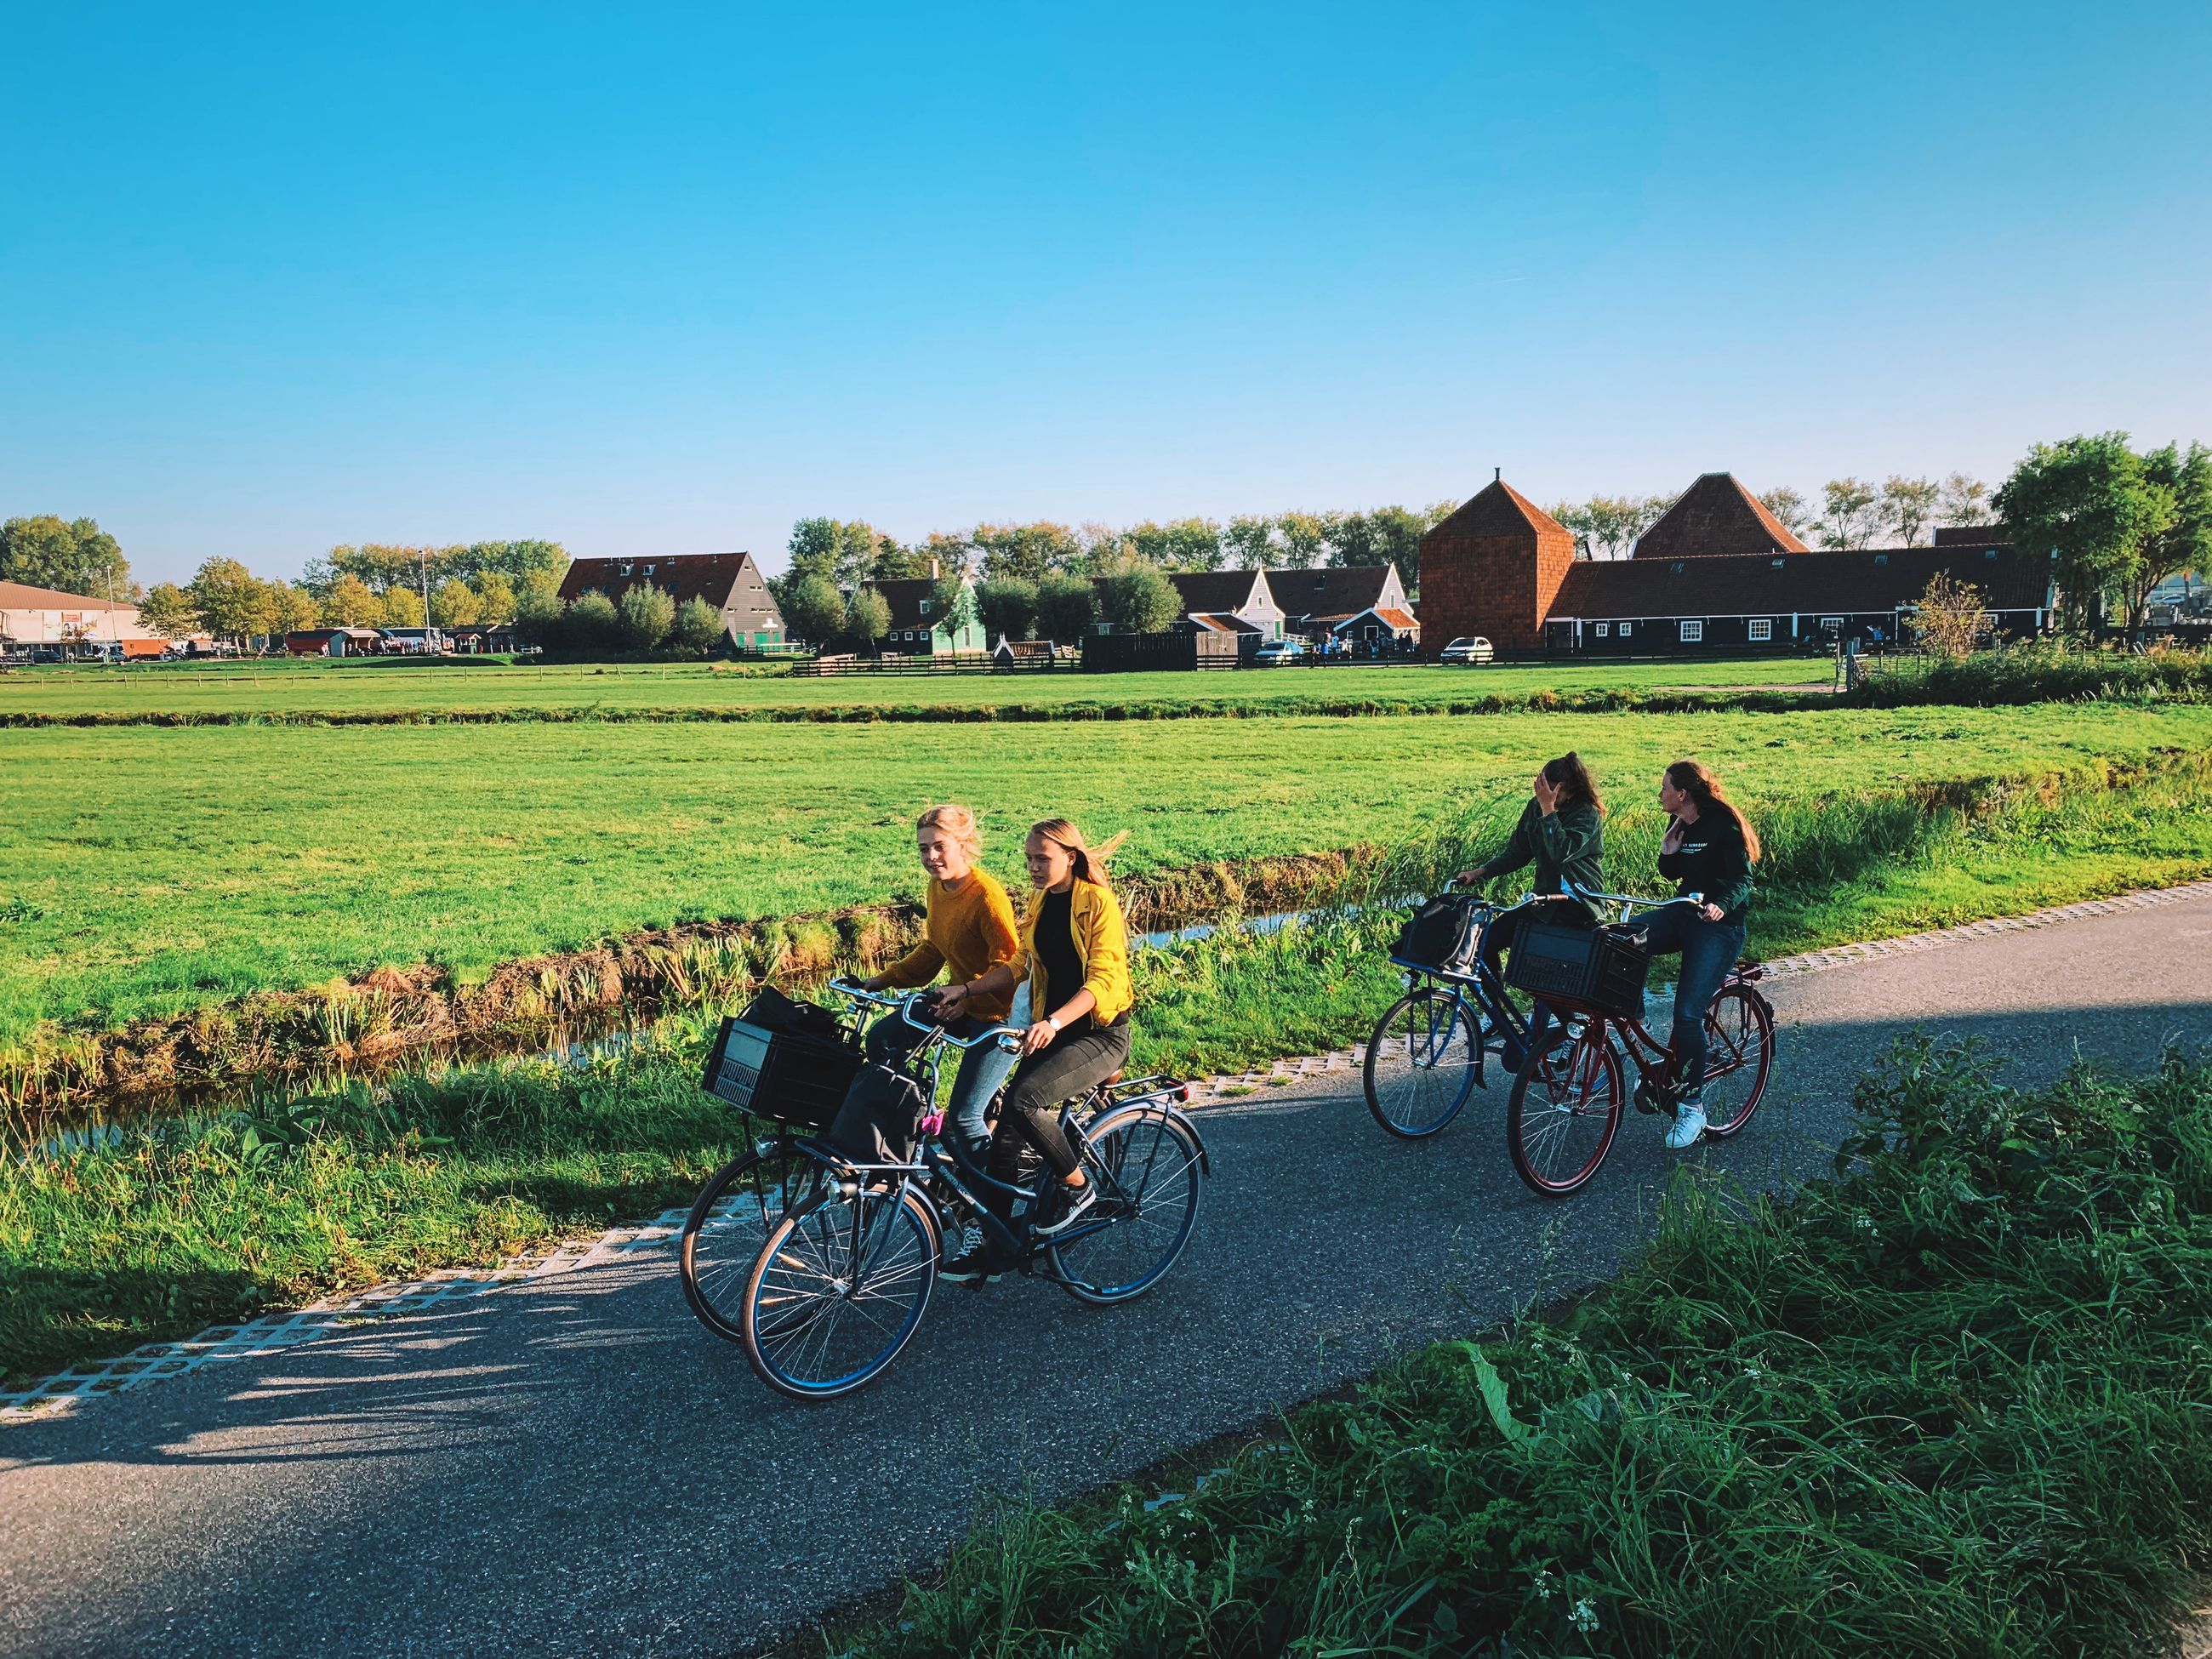 transportation, grass, sky, land vehicle, nature, built structure, bicycle, field, plant, road, architecture, day, real people, group of people, mode of transportation, landscape, men, mammal, building exterior, land, riding, outdoors